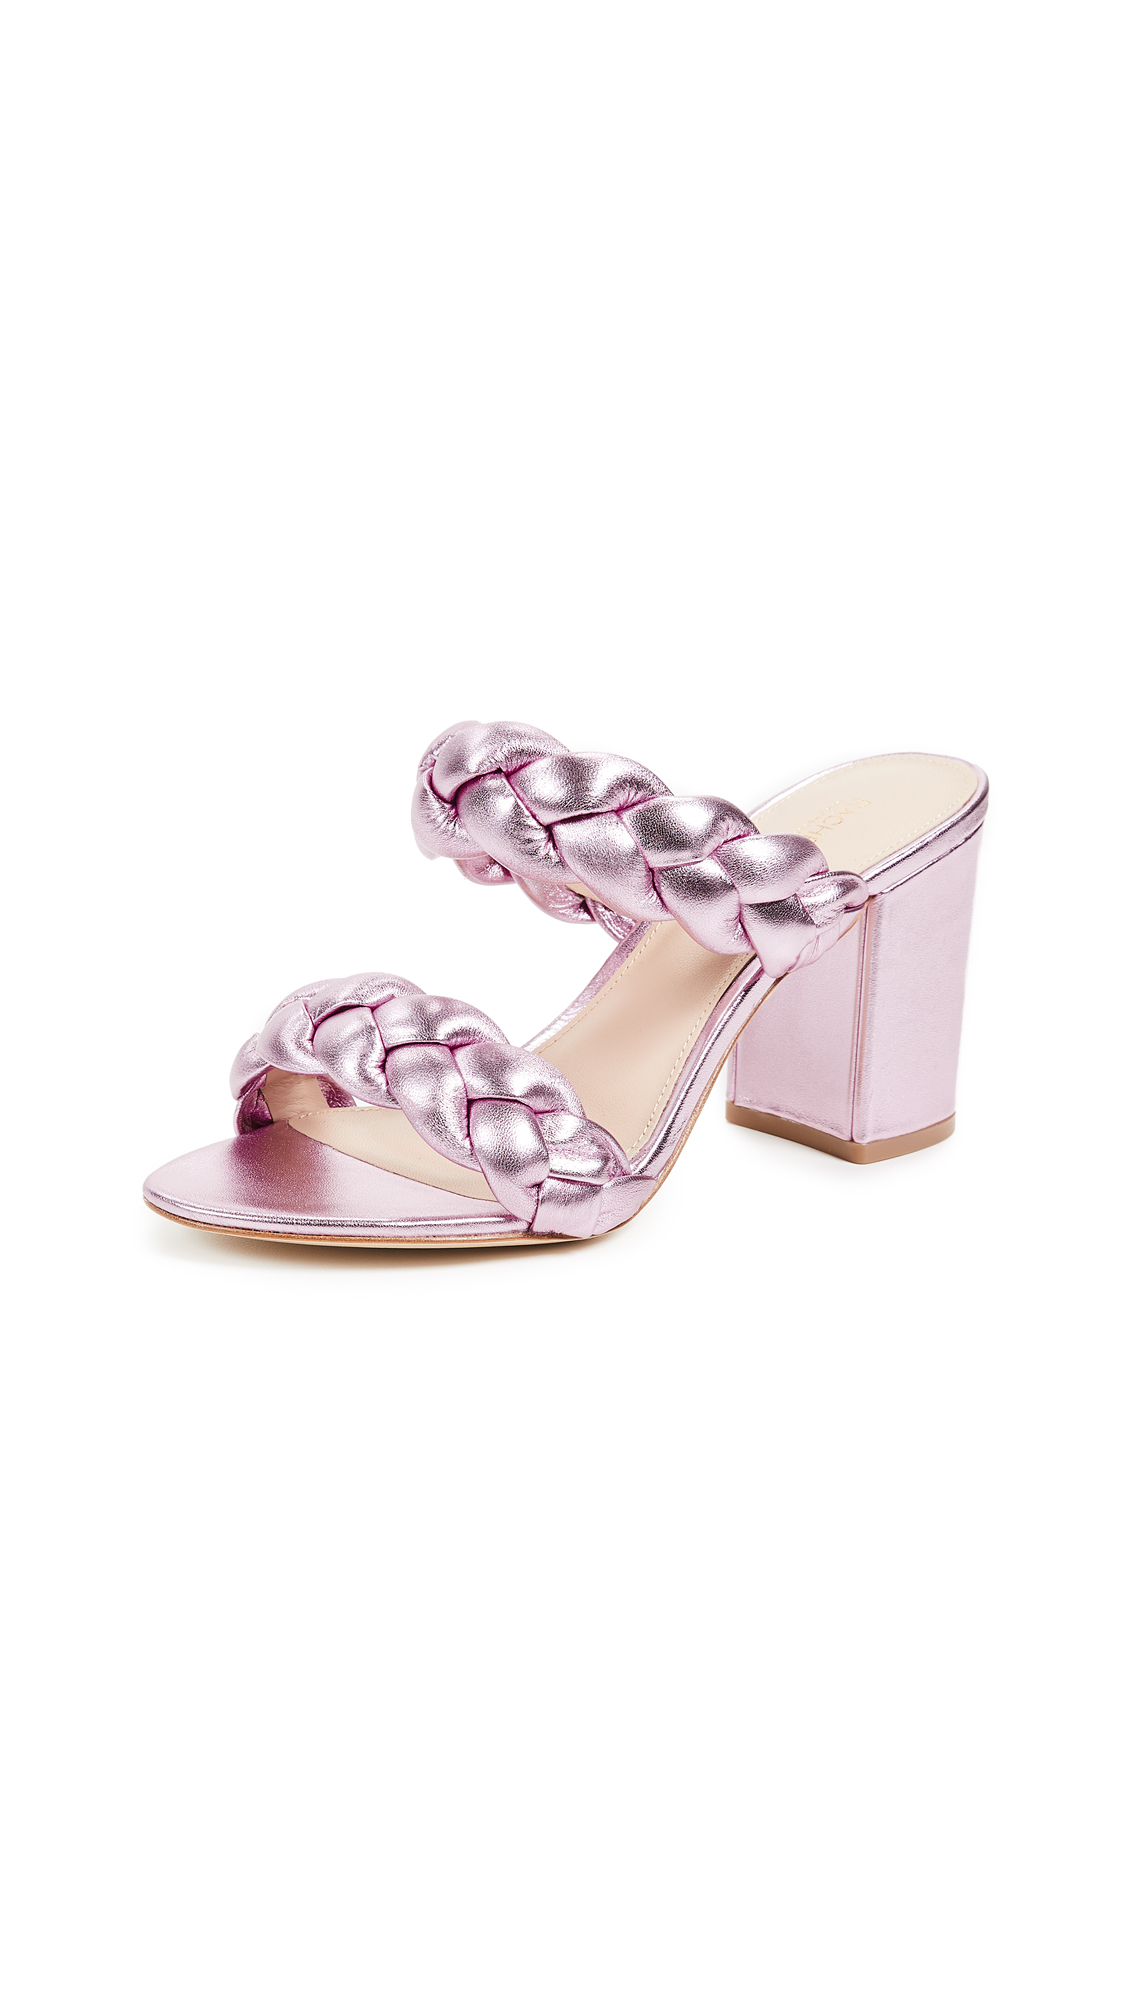 Rachel Zoe Demi Braid Sandals - Pale Pink